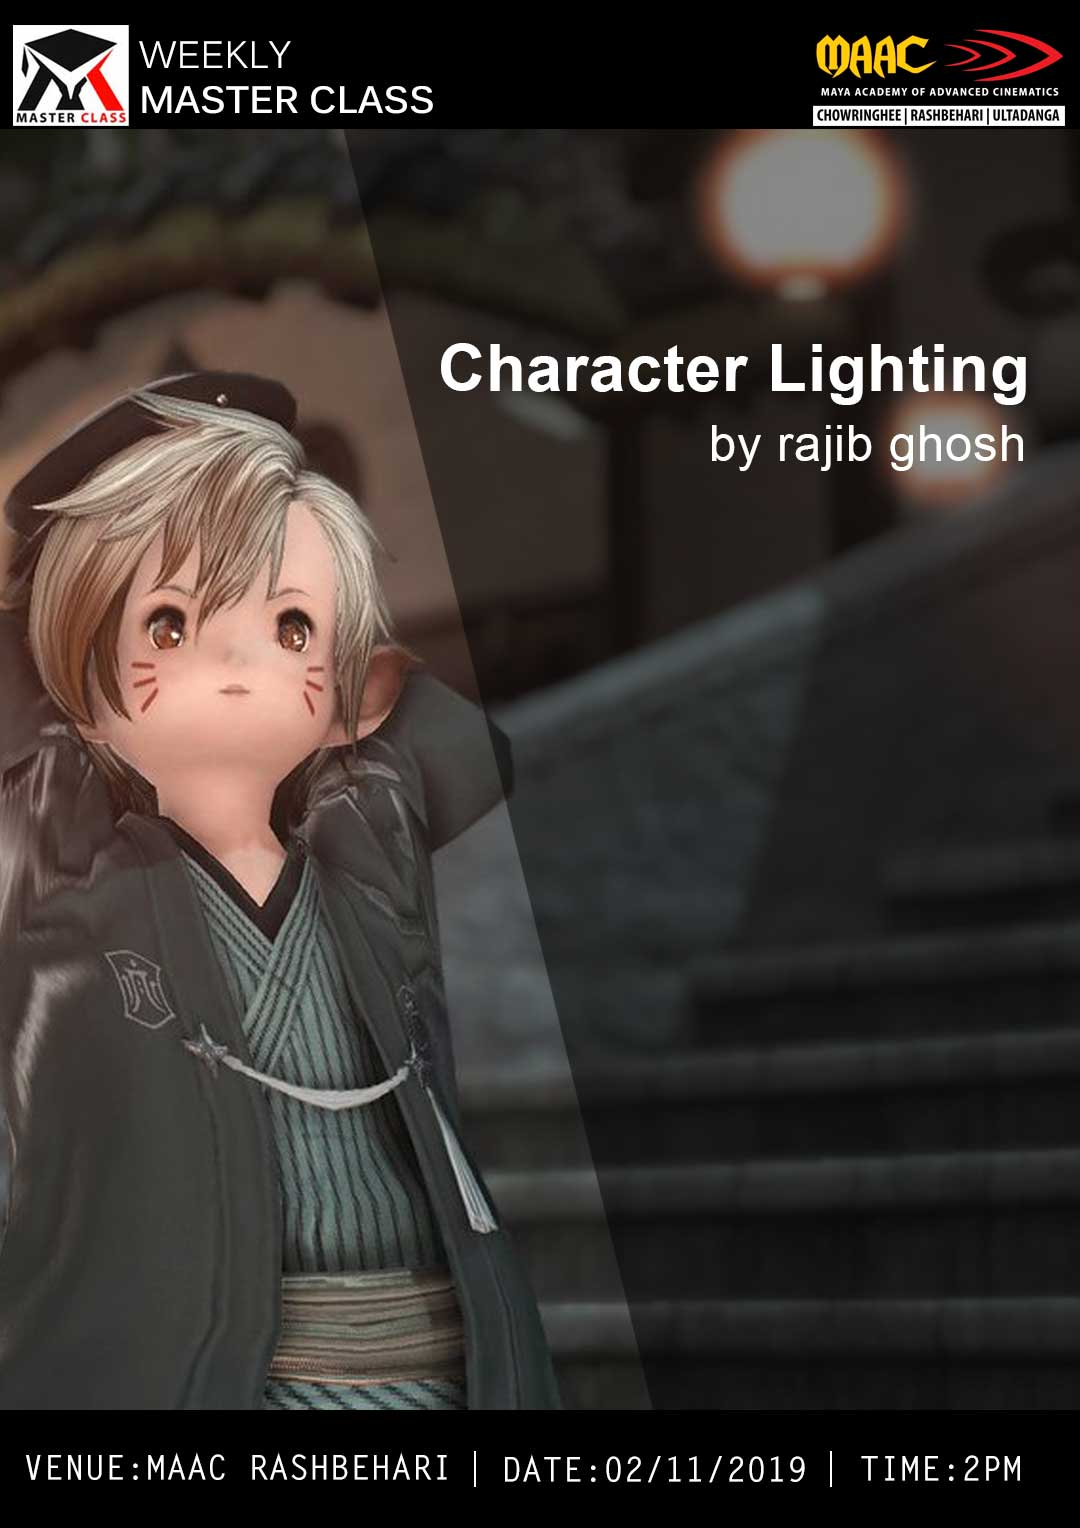 Weekly Master Class on Character Lighting